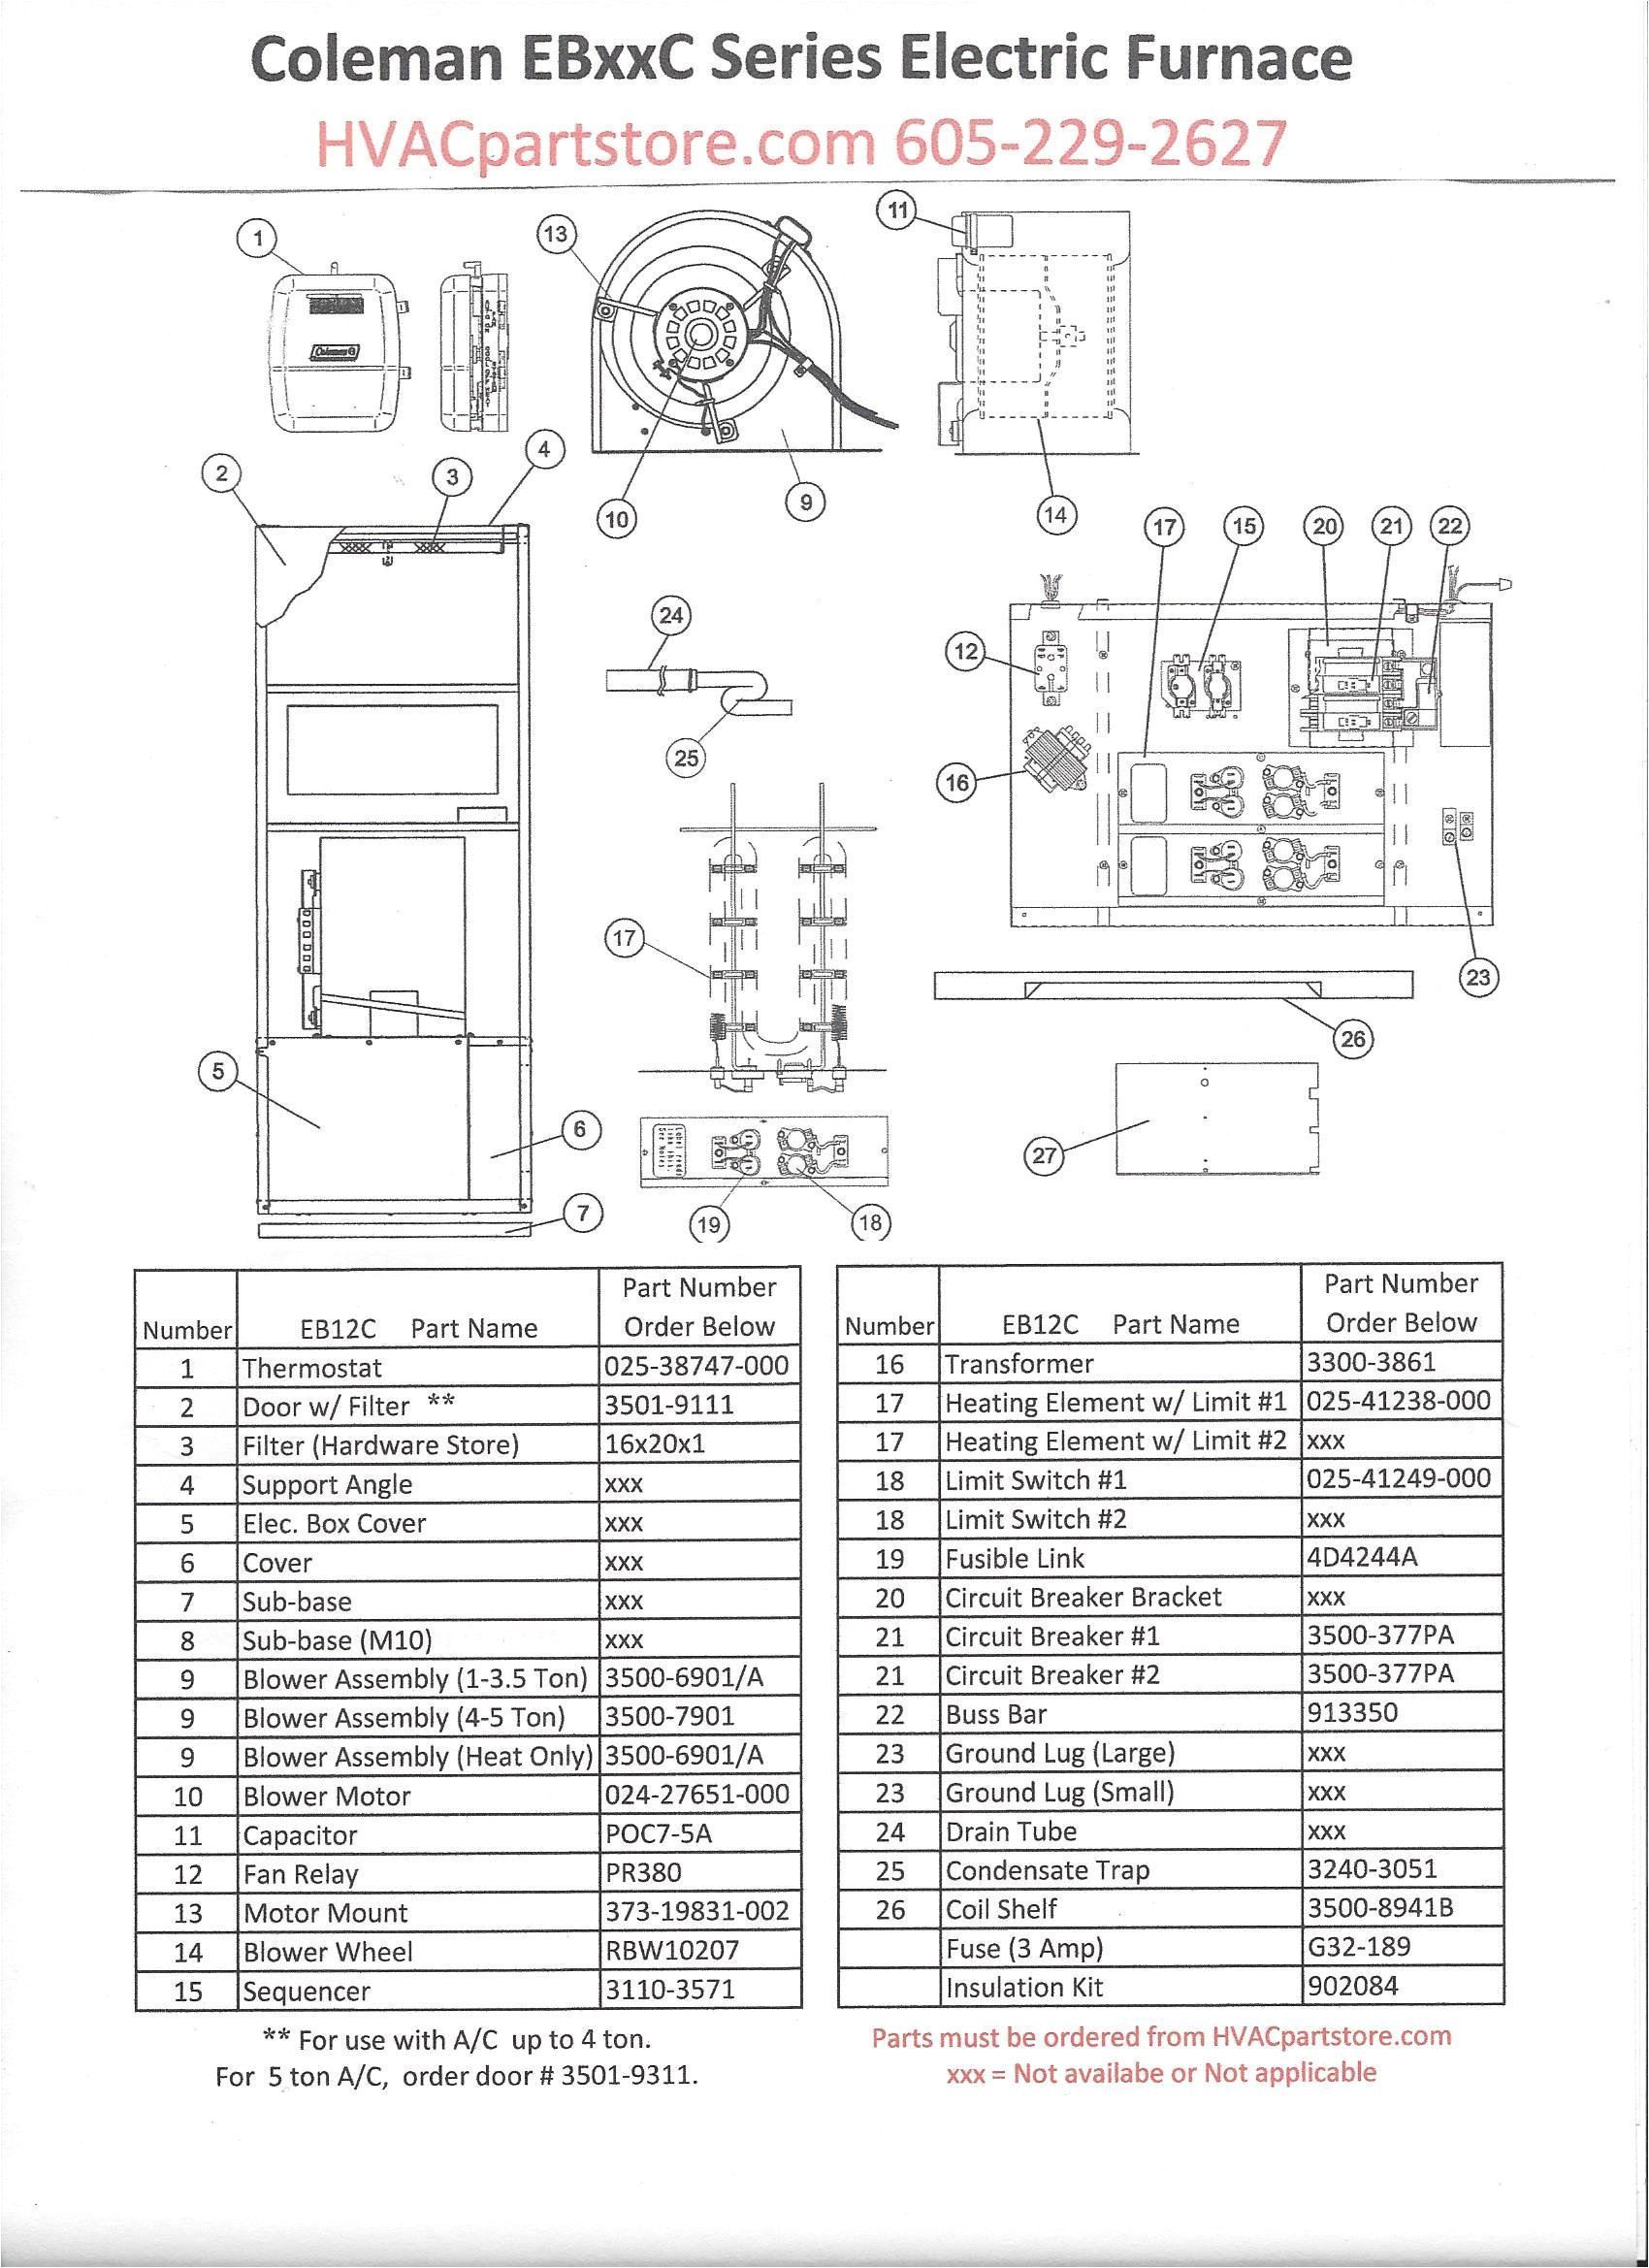 eb12c coleman electric furnace parts u2013 tagged 220 240v inputsclick here to view wiring diagrams